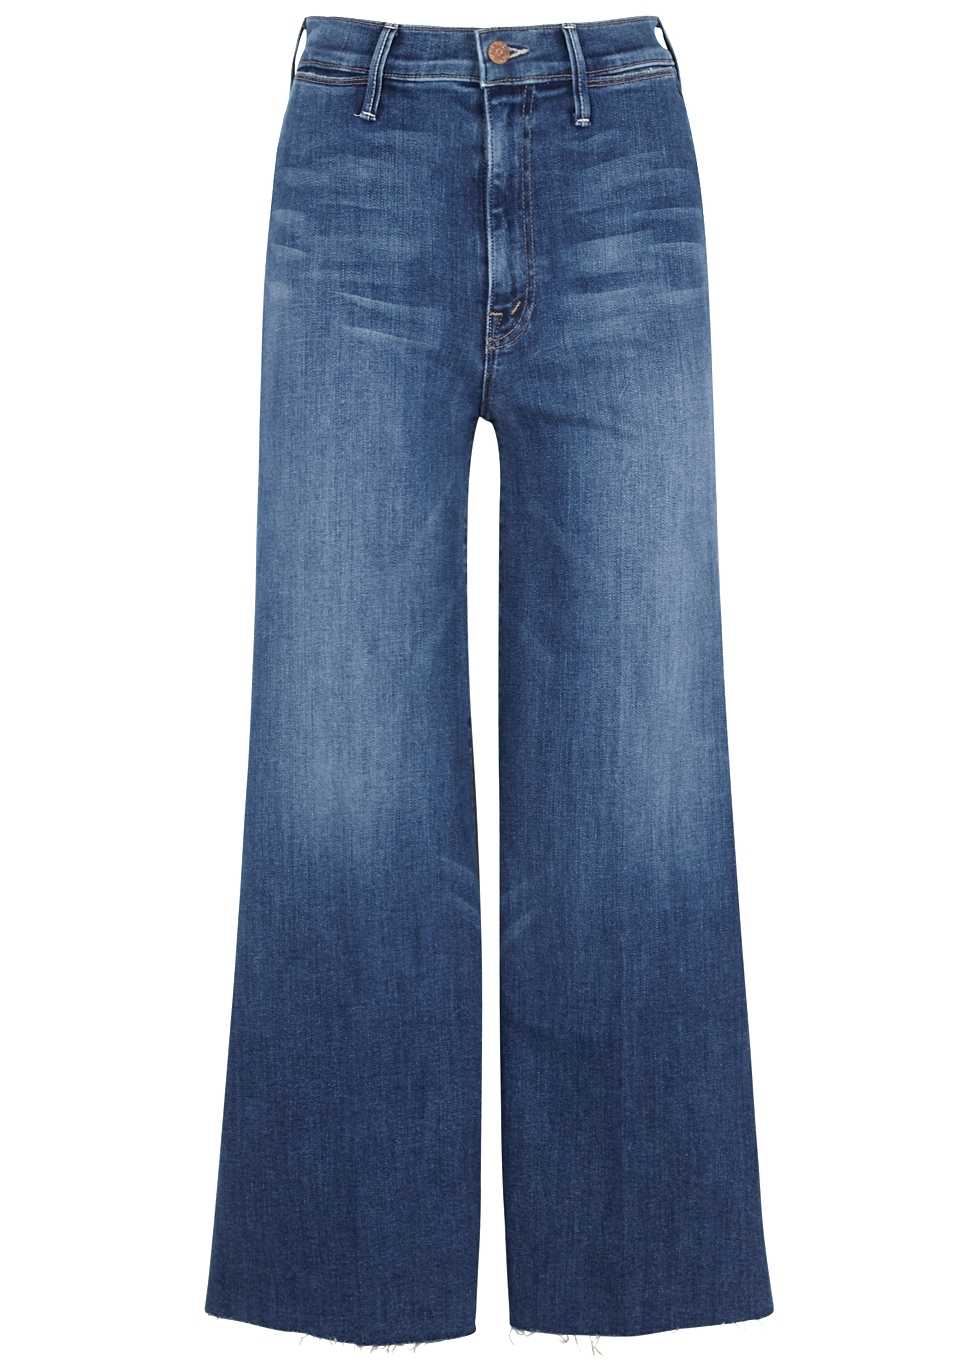 THE SWOONER ROLLER CROPPED WIDE-LEG JEANS